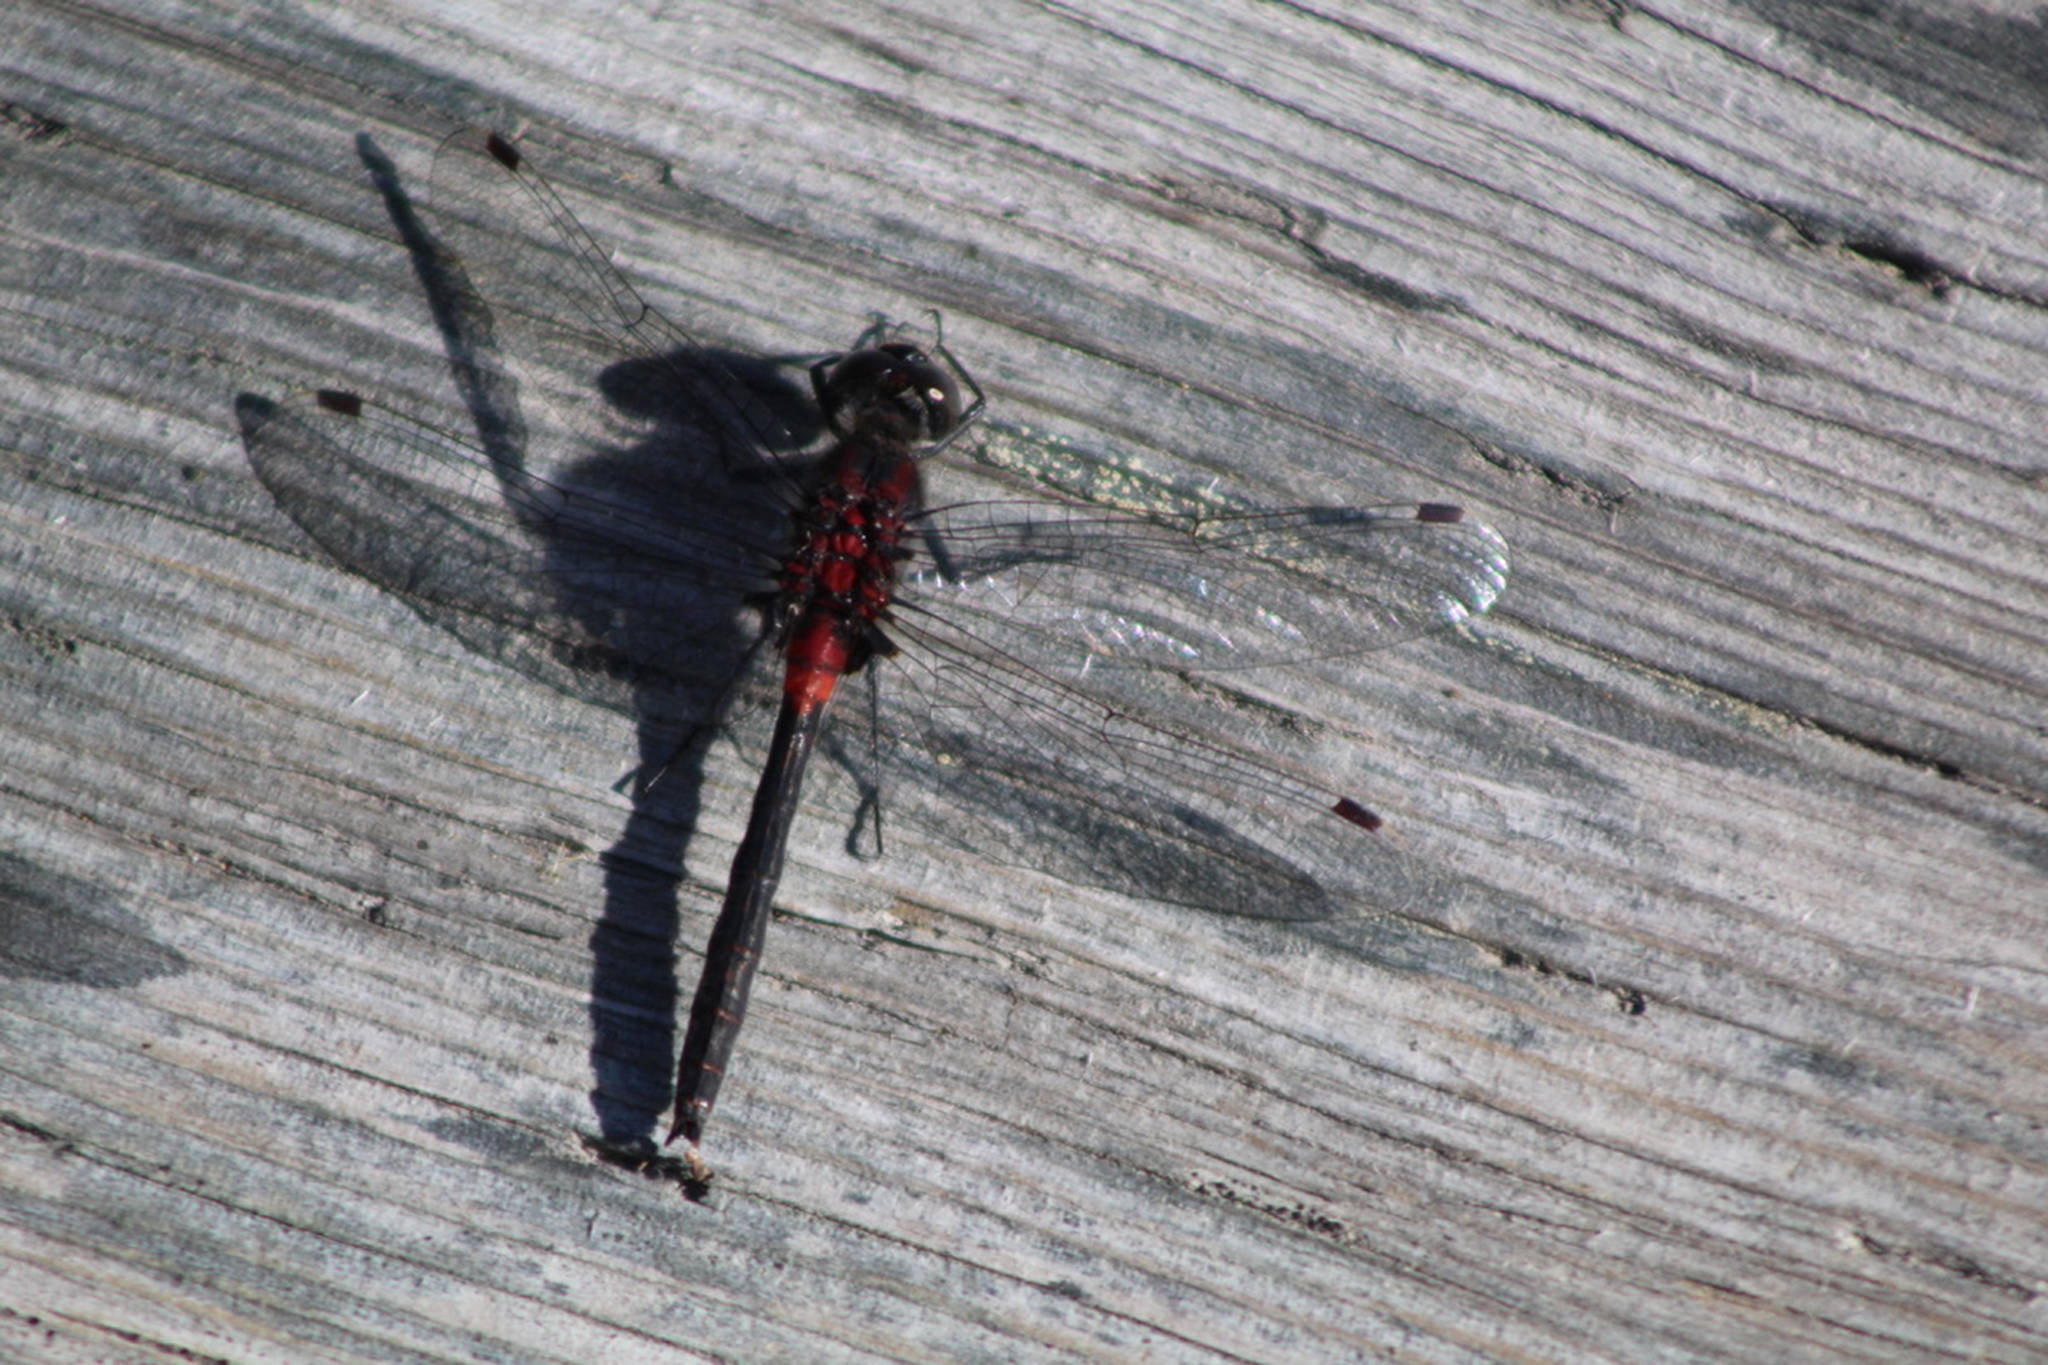 This dragonfly at the Kenai Wildlife Refuge in the last week of July 2020. (Courtesy Photo / Carolyn Kelley)